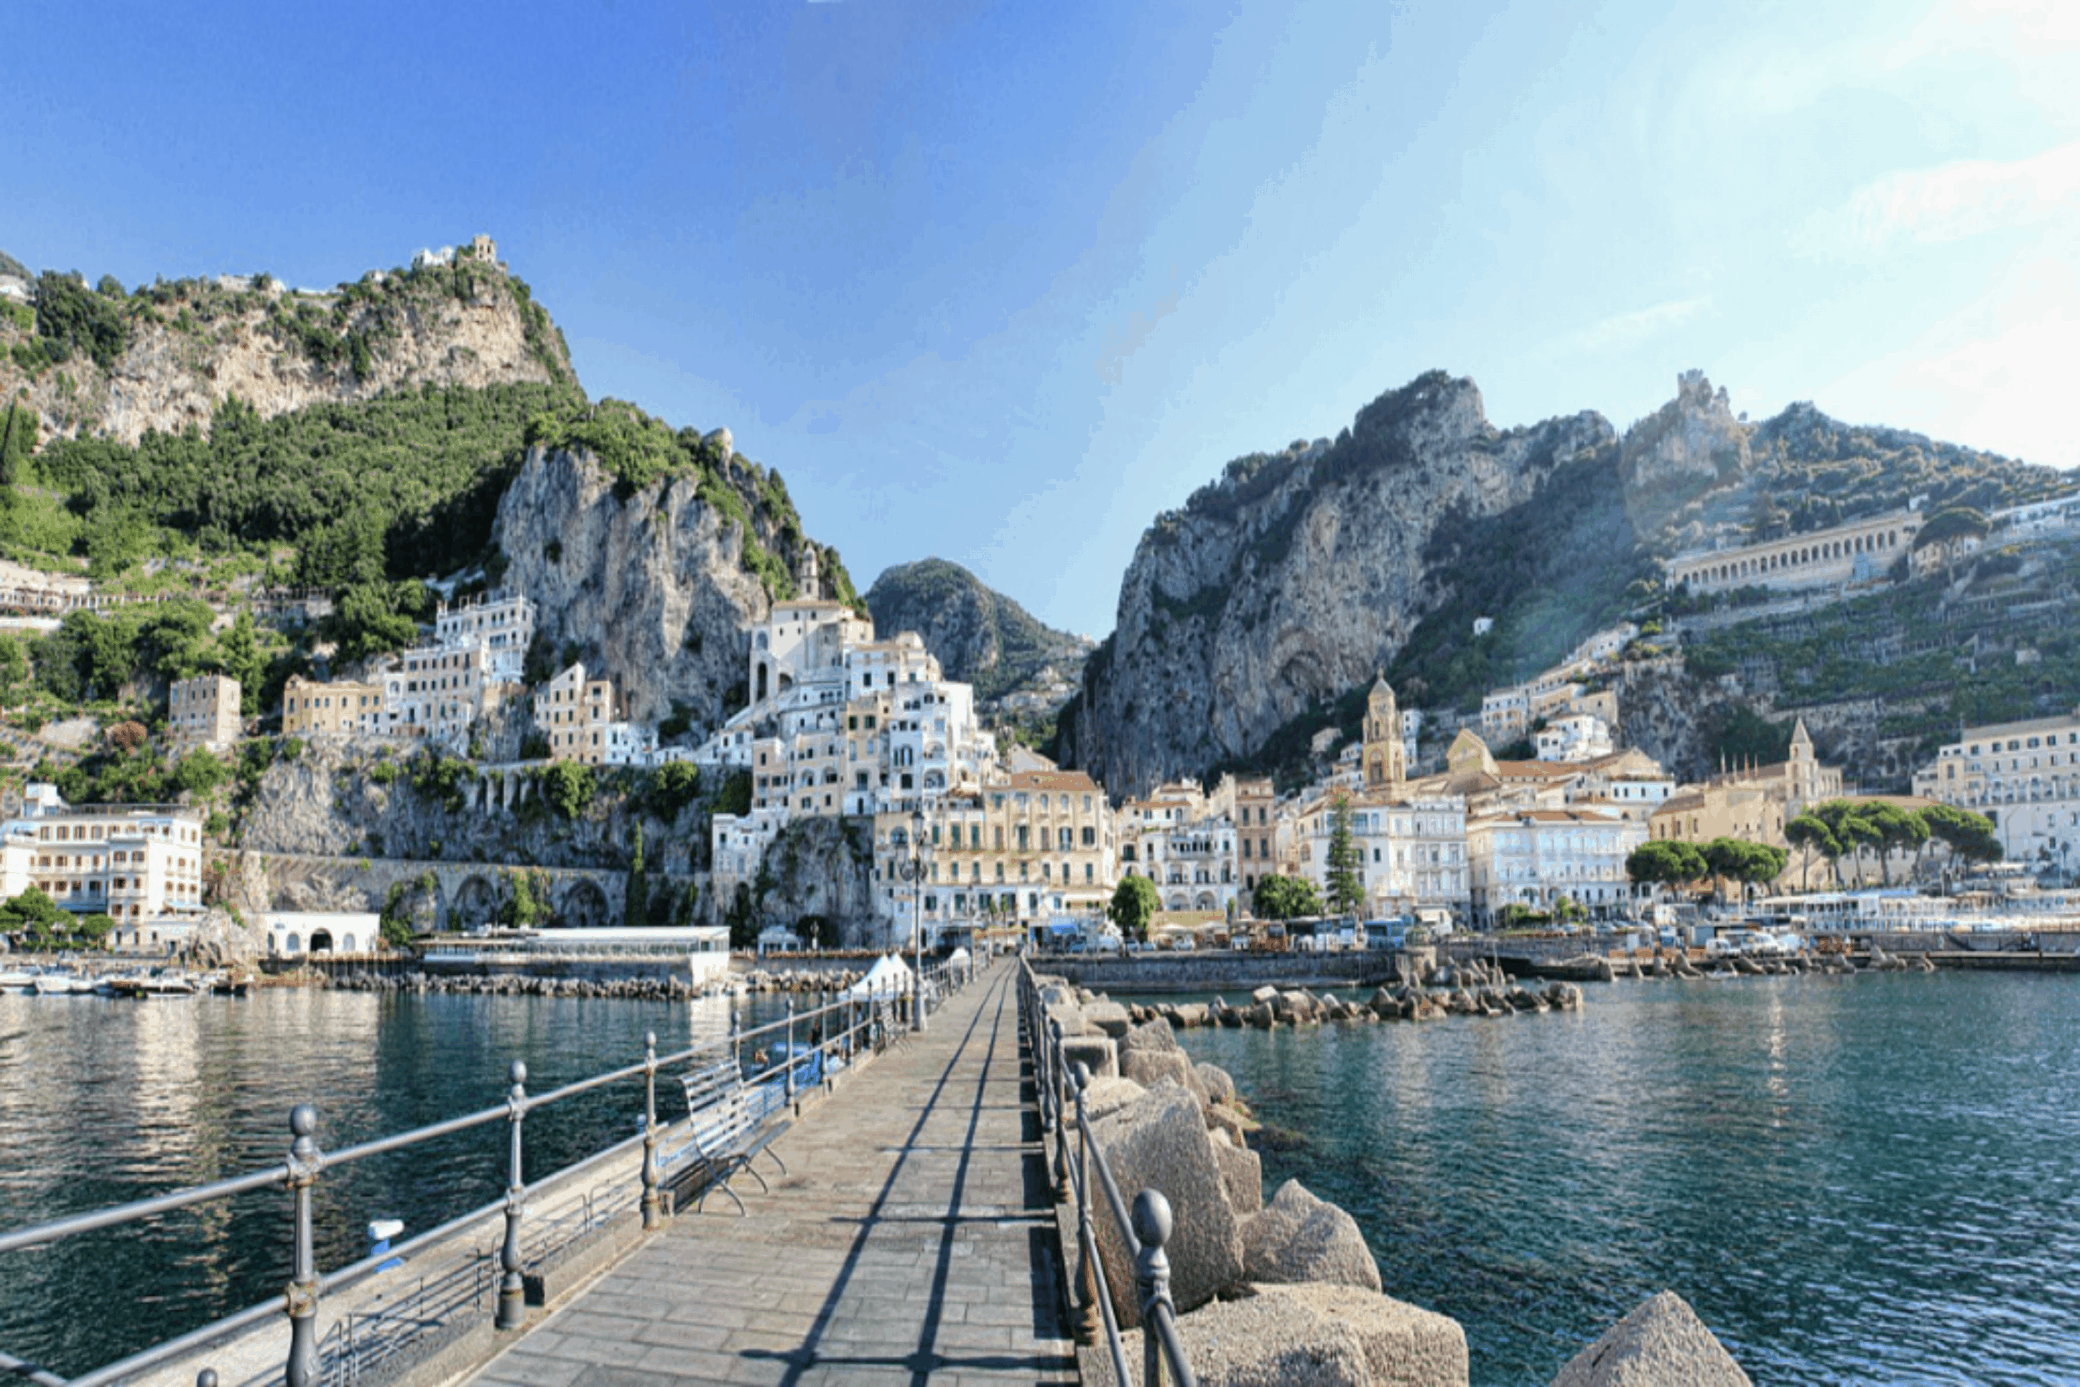 10 Best Day Trips from Rome That Are Worth Taking